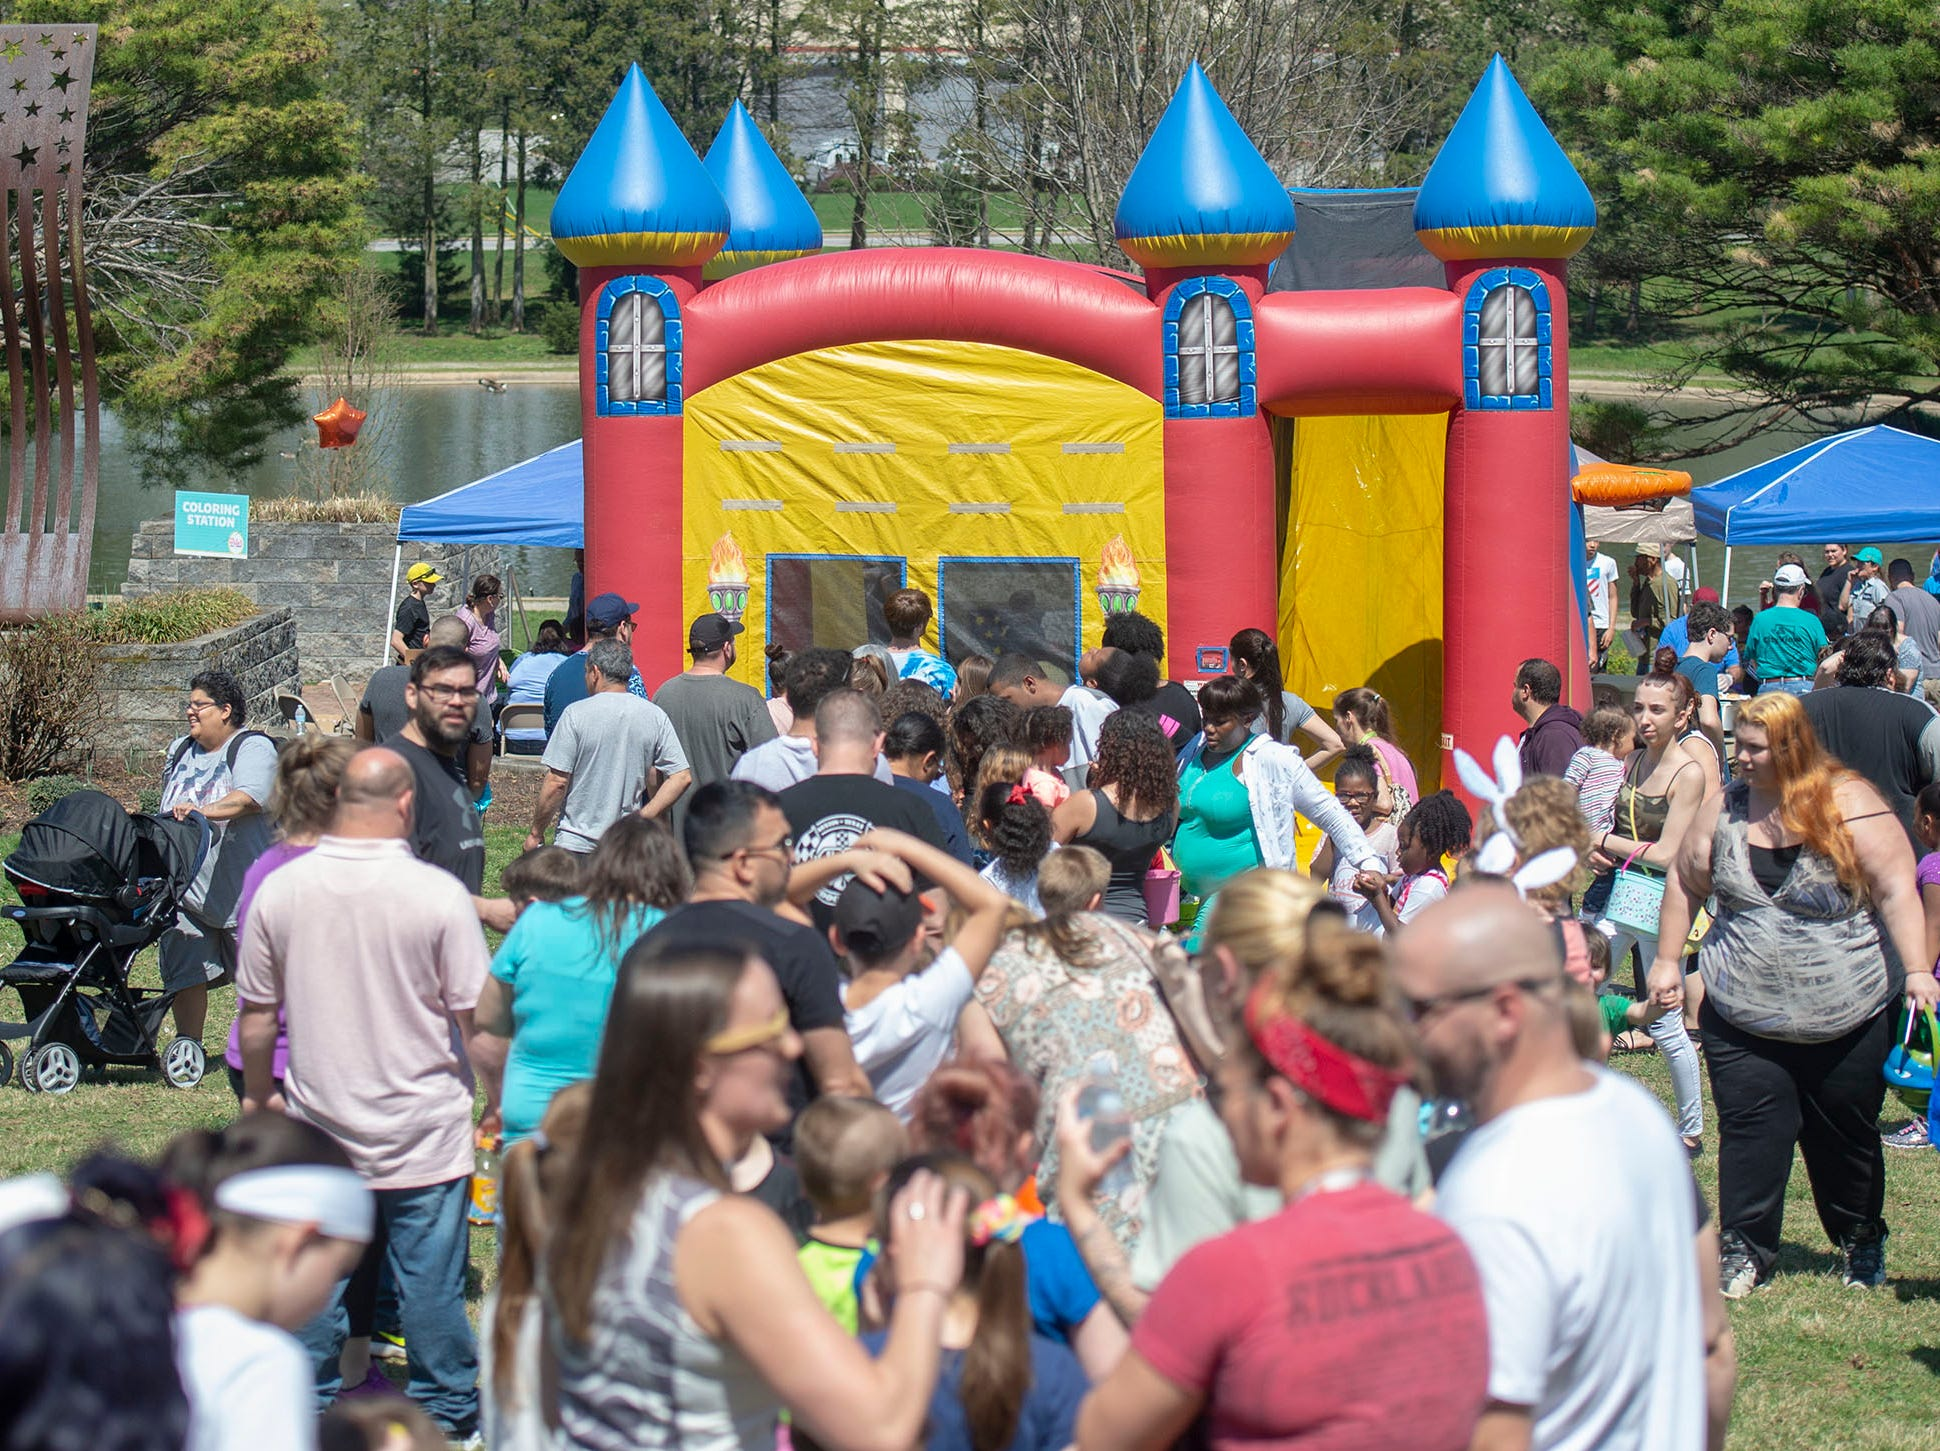 It only took a few minutes for a long line to form for the bounce house at the City of York's Easter Egg Hunt at Kiwanis Lake on Saturday, April 13, 2019.